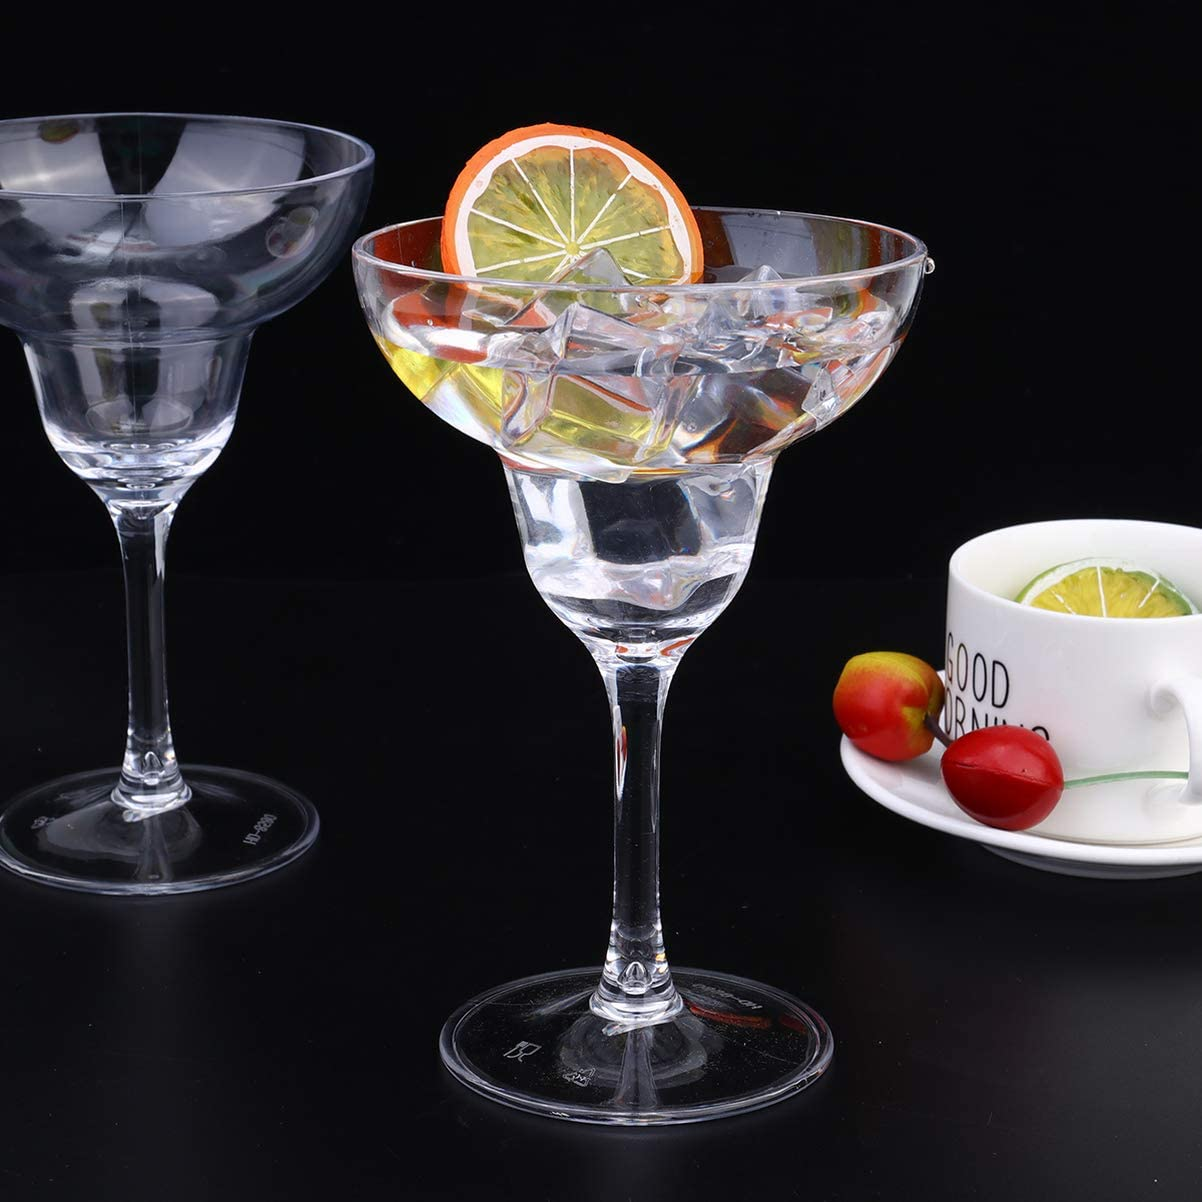 24OML Transparent STOBOK 4pcs Acrylic Martini Cocktail Glass Unbreakable Martini Cup for Home Bar Restaurant